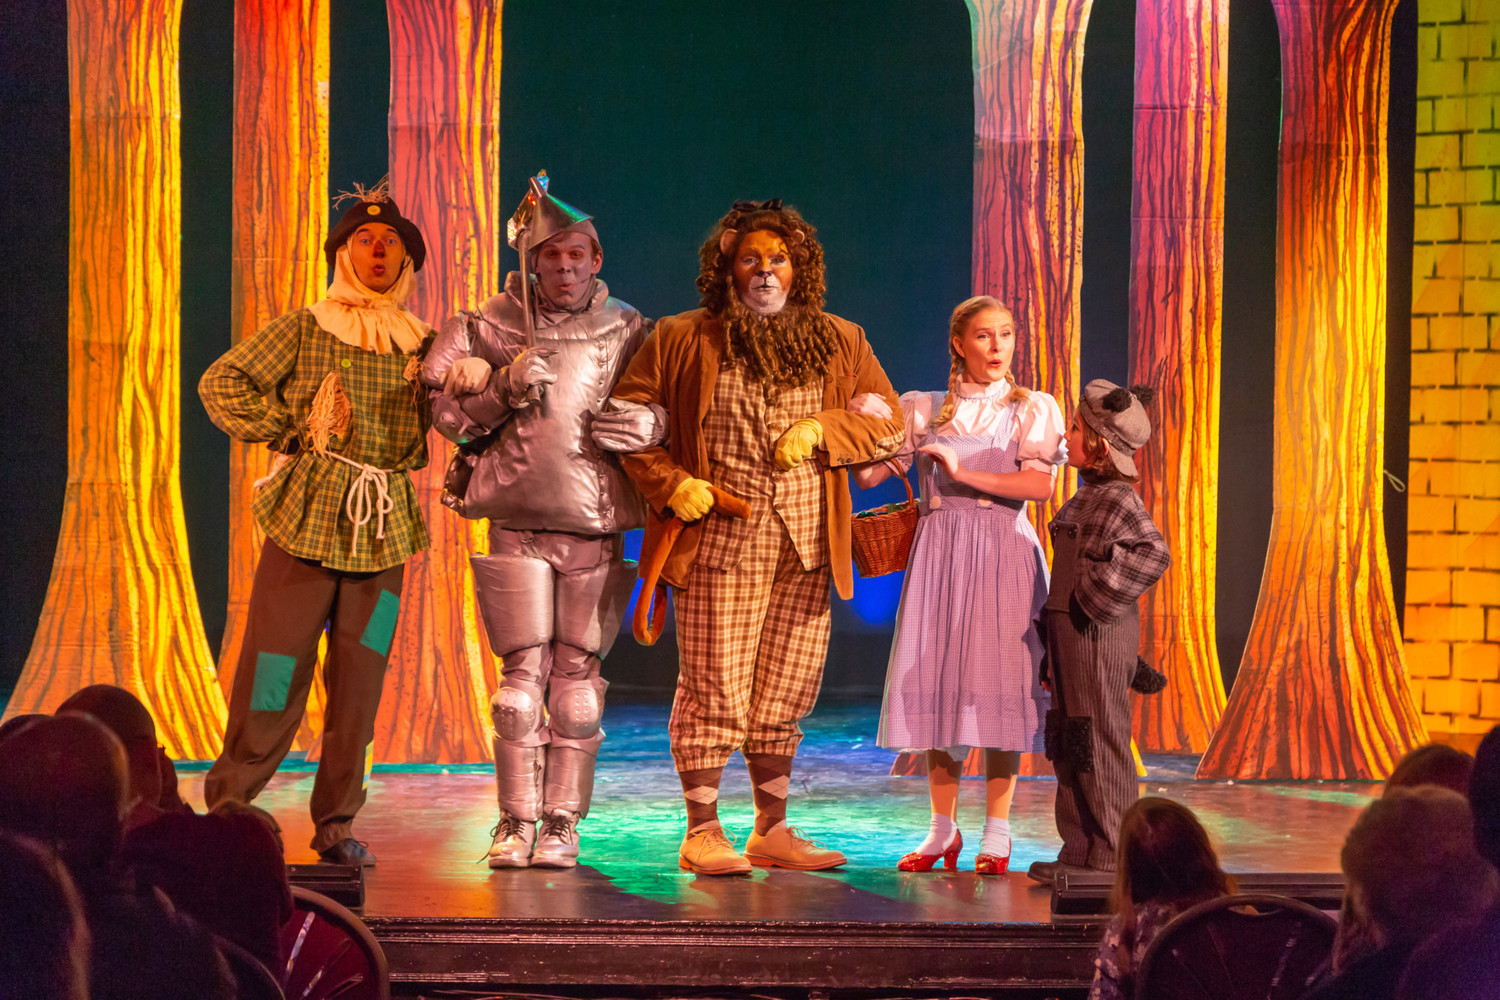 BWW Review: THE WIZARD OF OZ at The Growing Stage